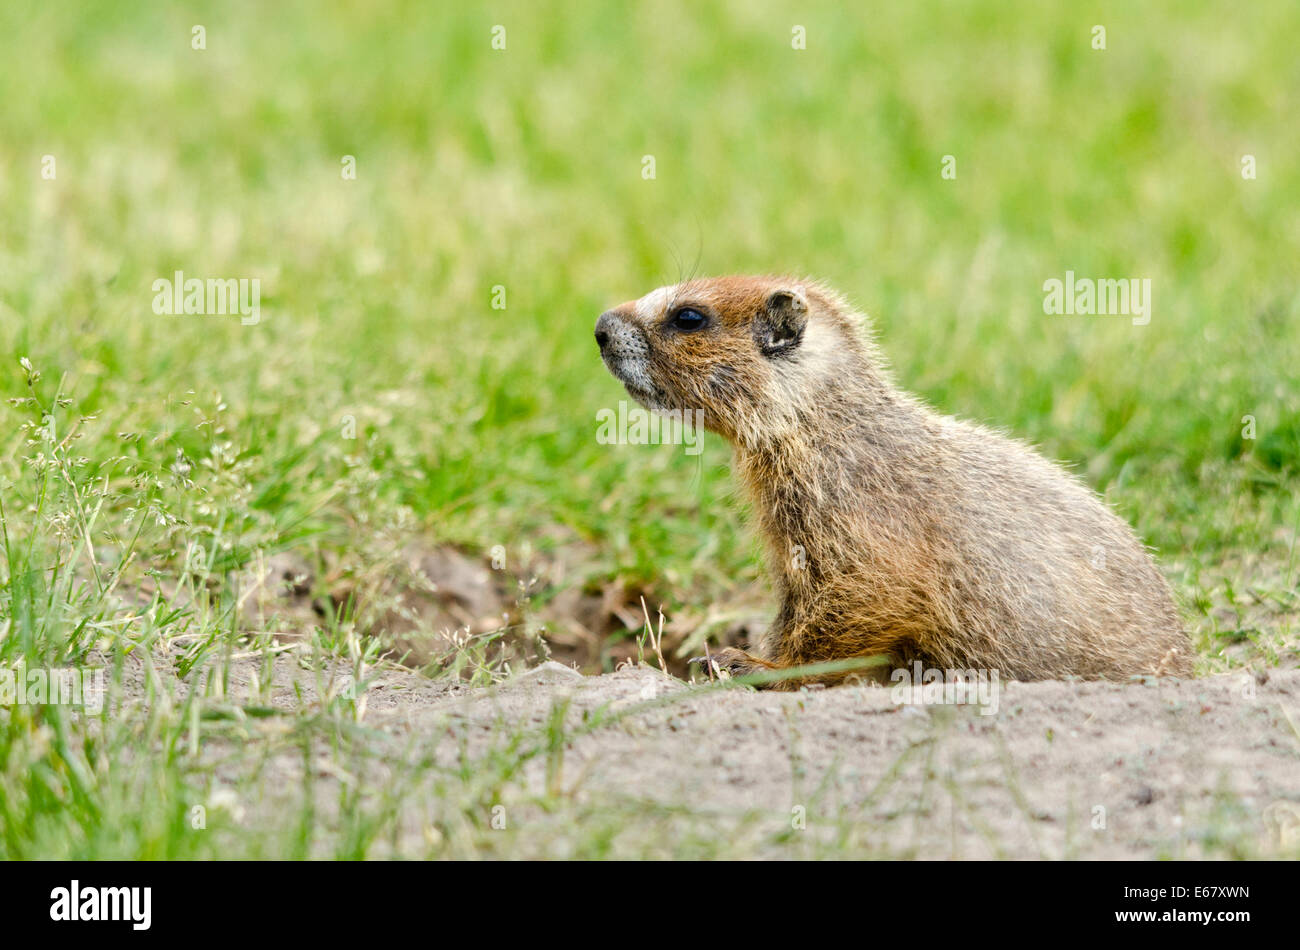 Young Yellow-bellied marmot at its burrow. - Stock Image